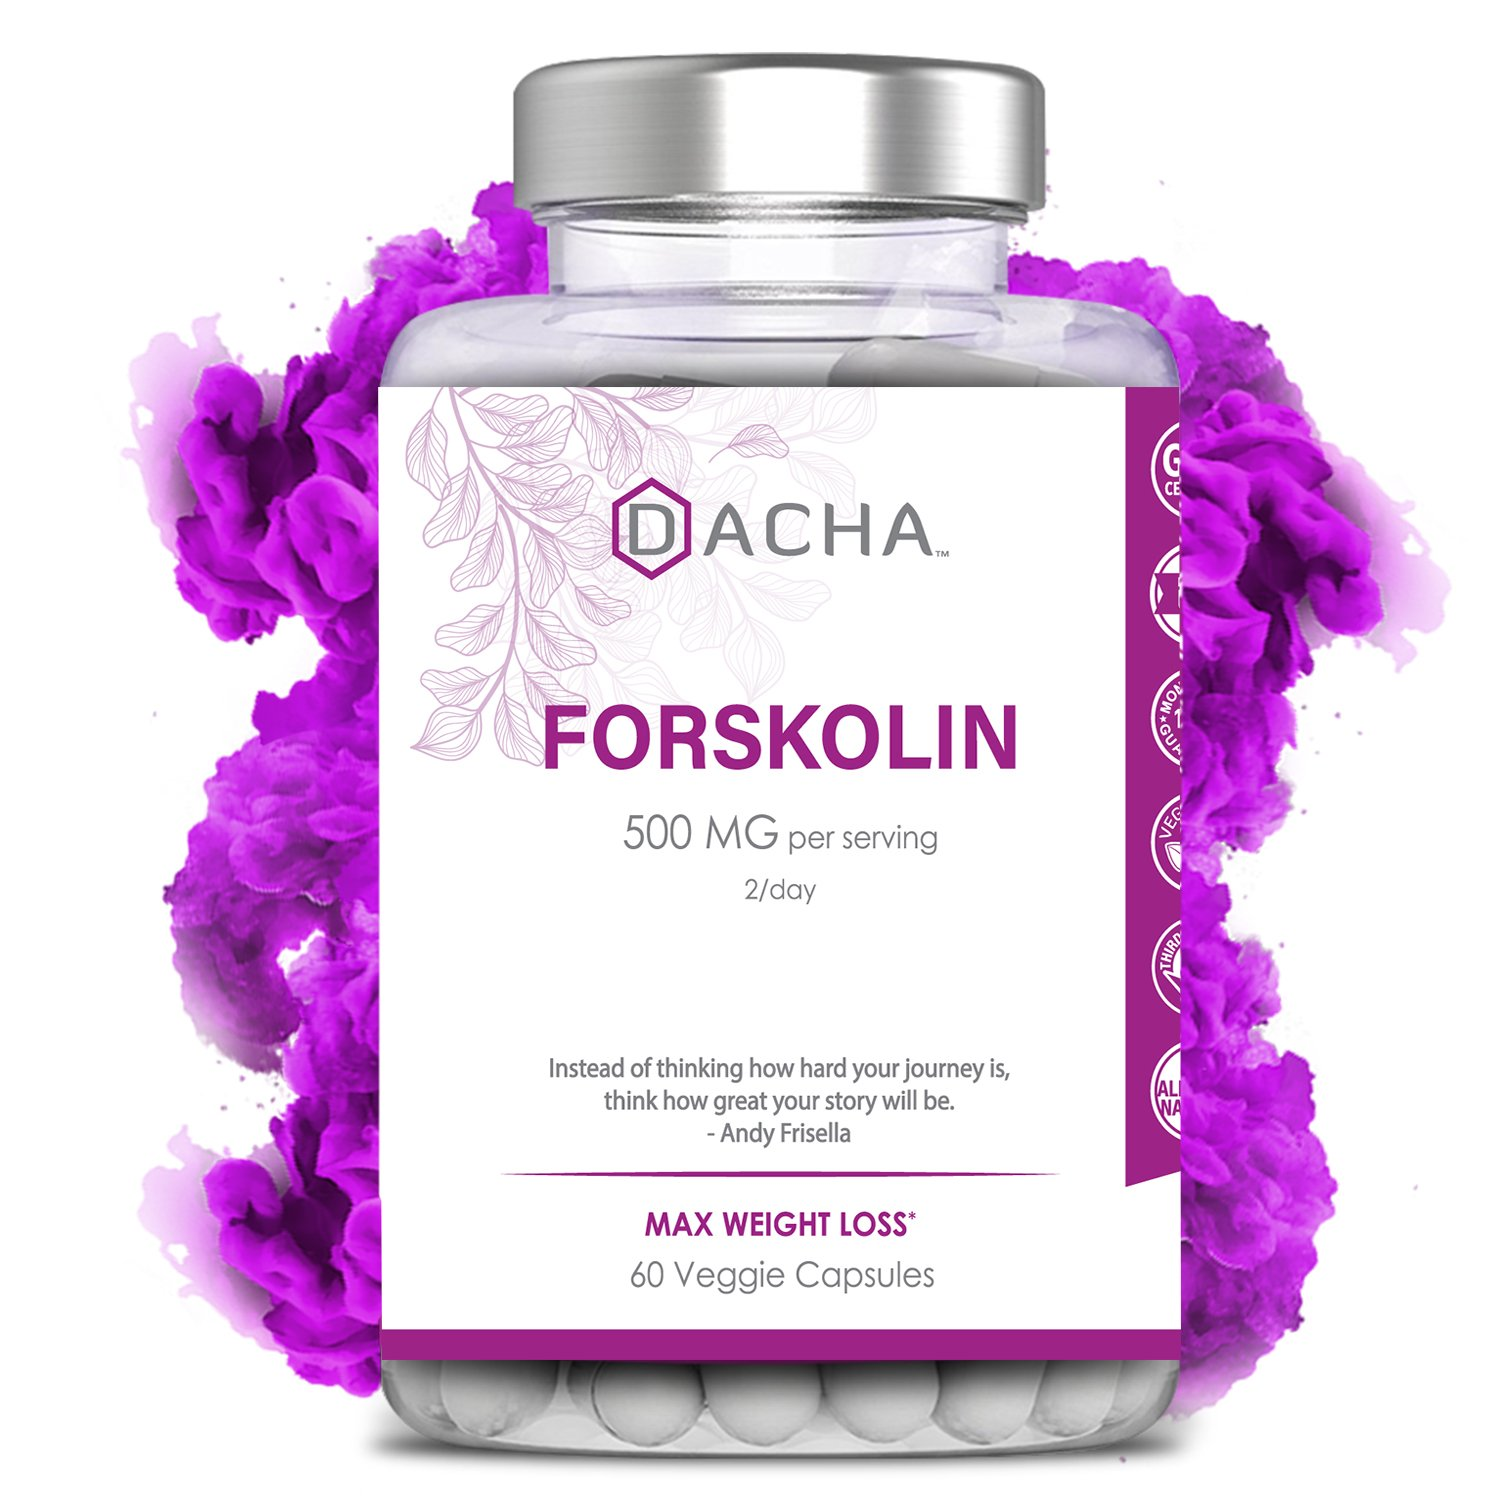 Premium Forskolin for Weight Loss - Natural Carb Blocker, Powerful Belly Fat Burner for Men, Pure Appetite Suppressant, Metabolism Booster Extract, Keto Diet Pills That Work Fast for Women, Luna Trim by DACHA Nutrition